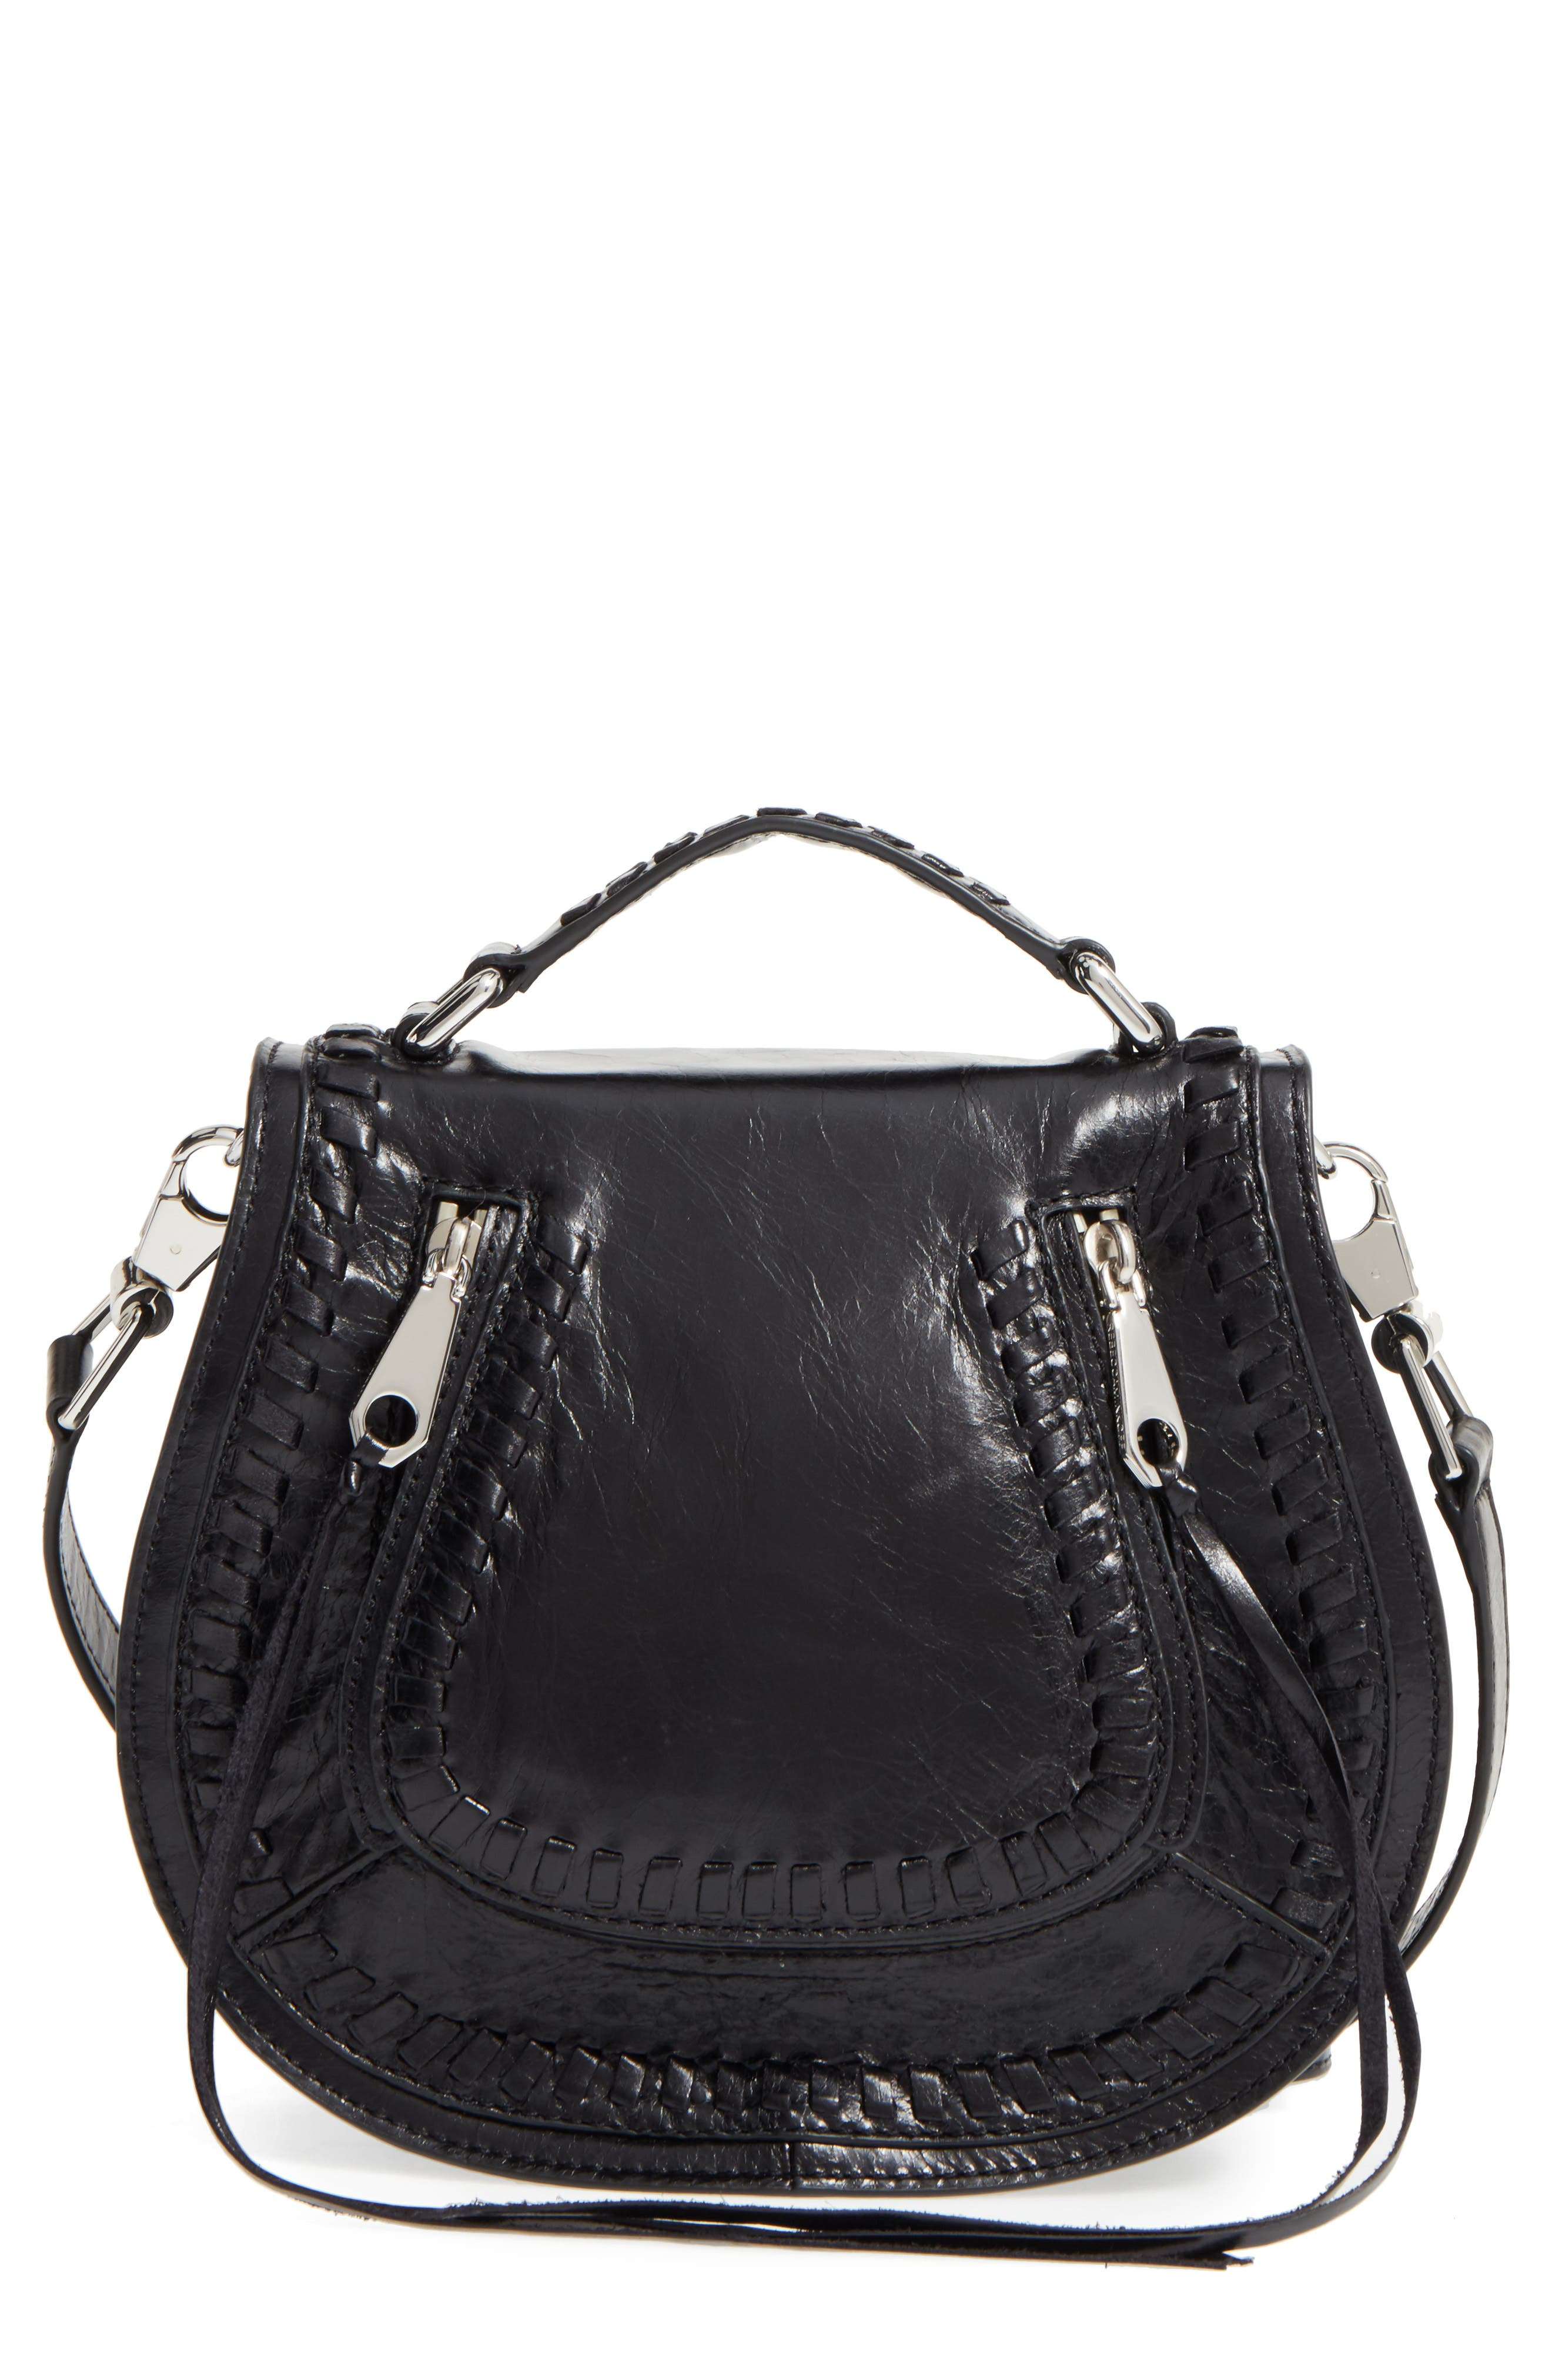 REBECCA MINKOFF, Small Vanity Leather Saddle Bag, Main thumbnail 1, color, 001